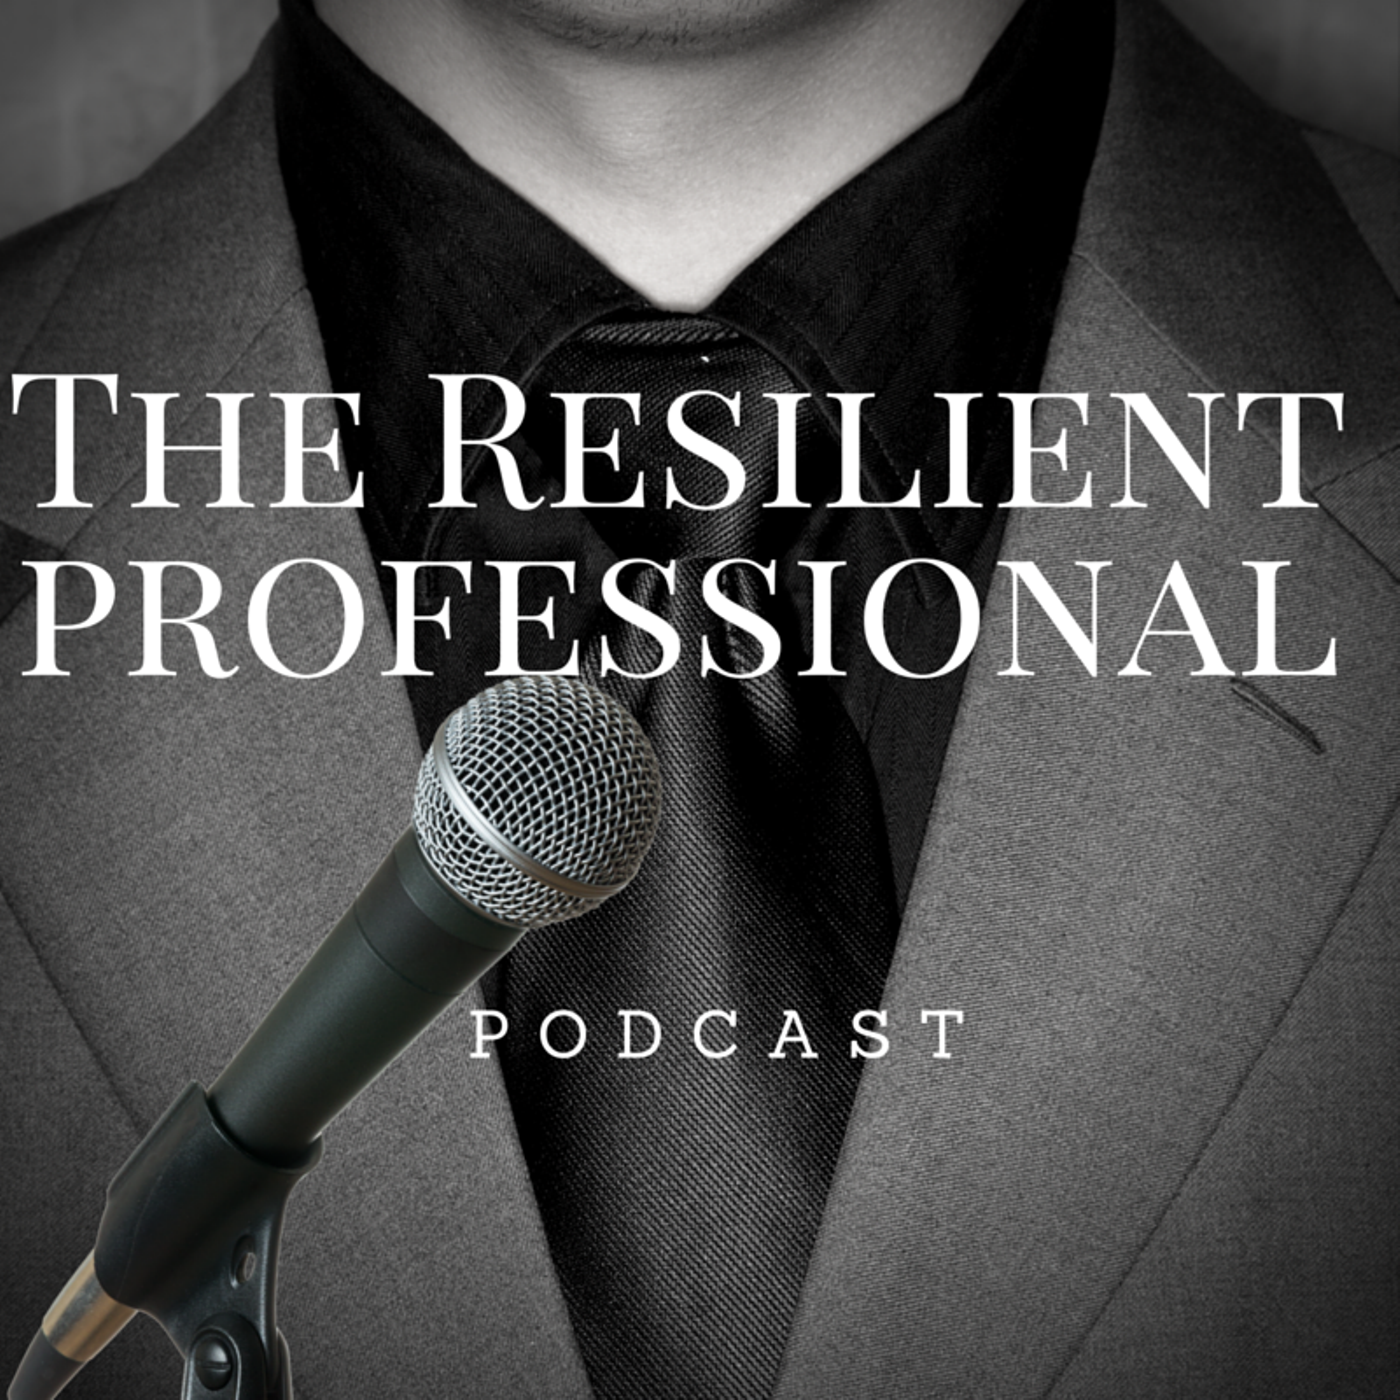 The Resilient Professional Podcast